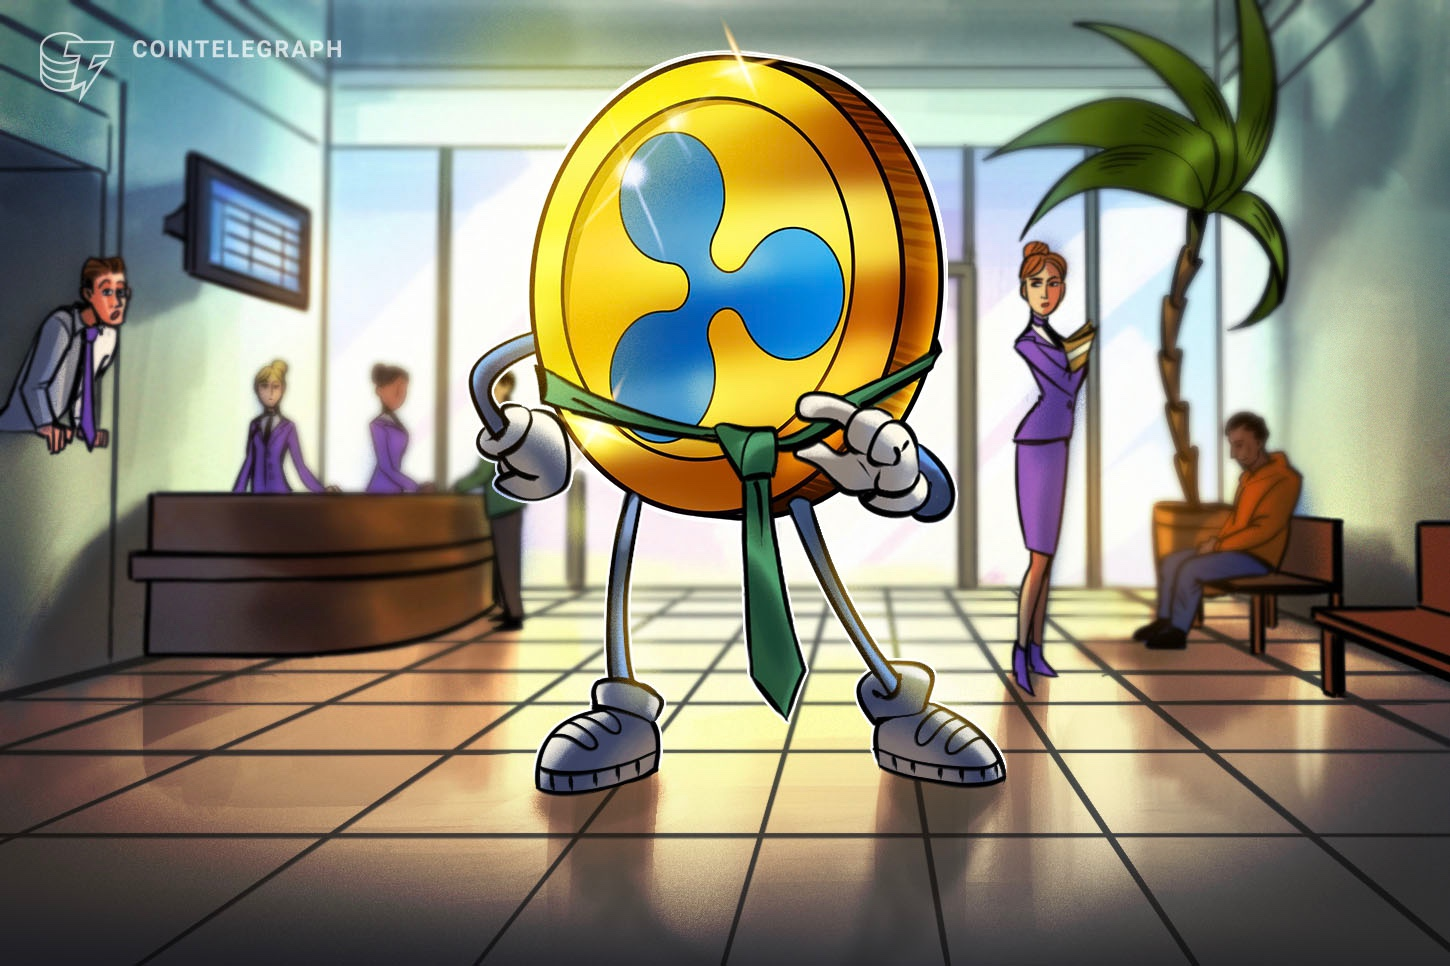 Ripple launches $250M fund for NFT creators